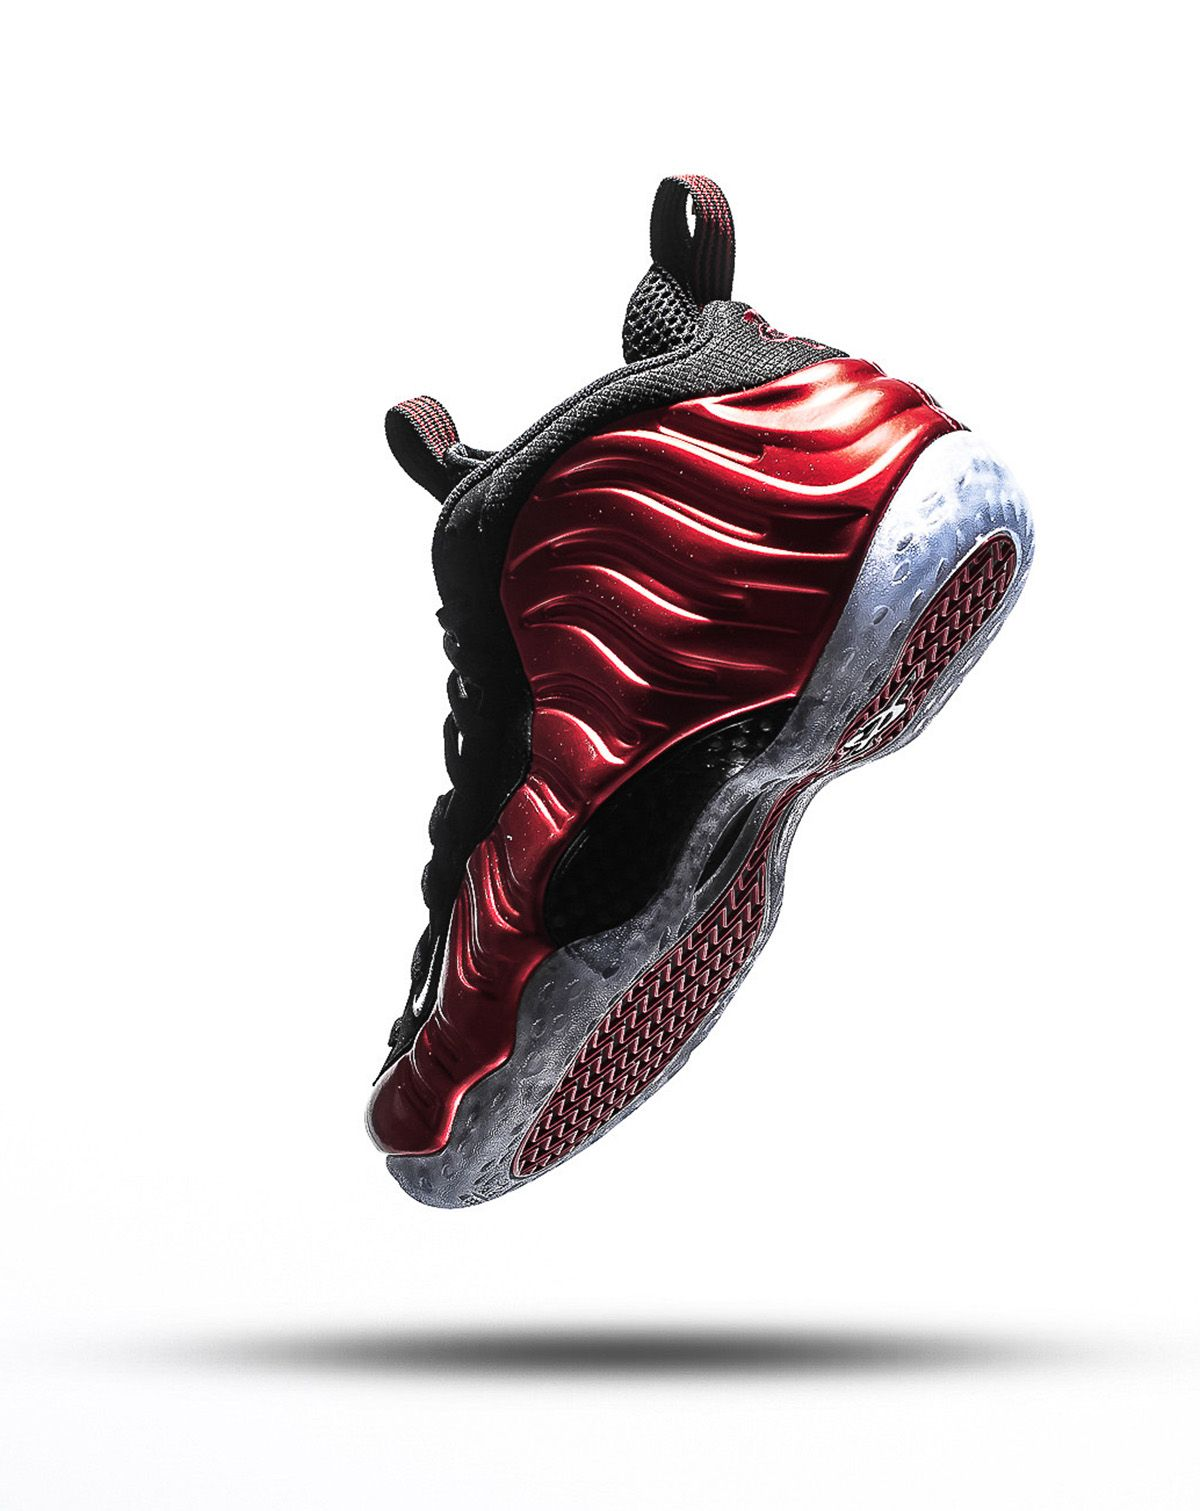 detailed look 3de76 a41e0 Nike Air Foamposite One  Metallic Red  2017 Reissue - EU Kicks  Sneaker  Magazine